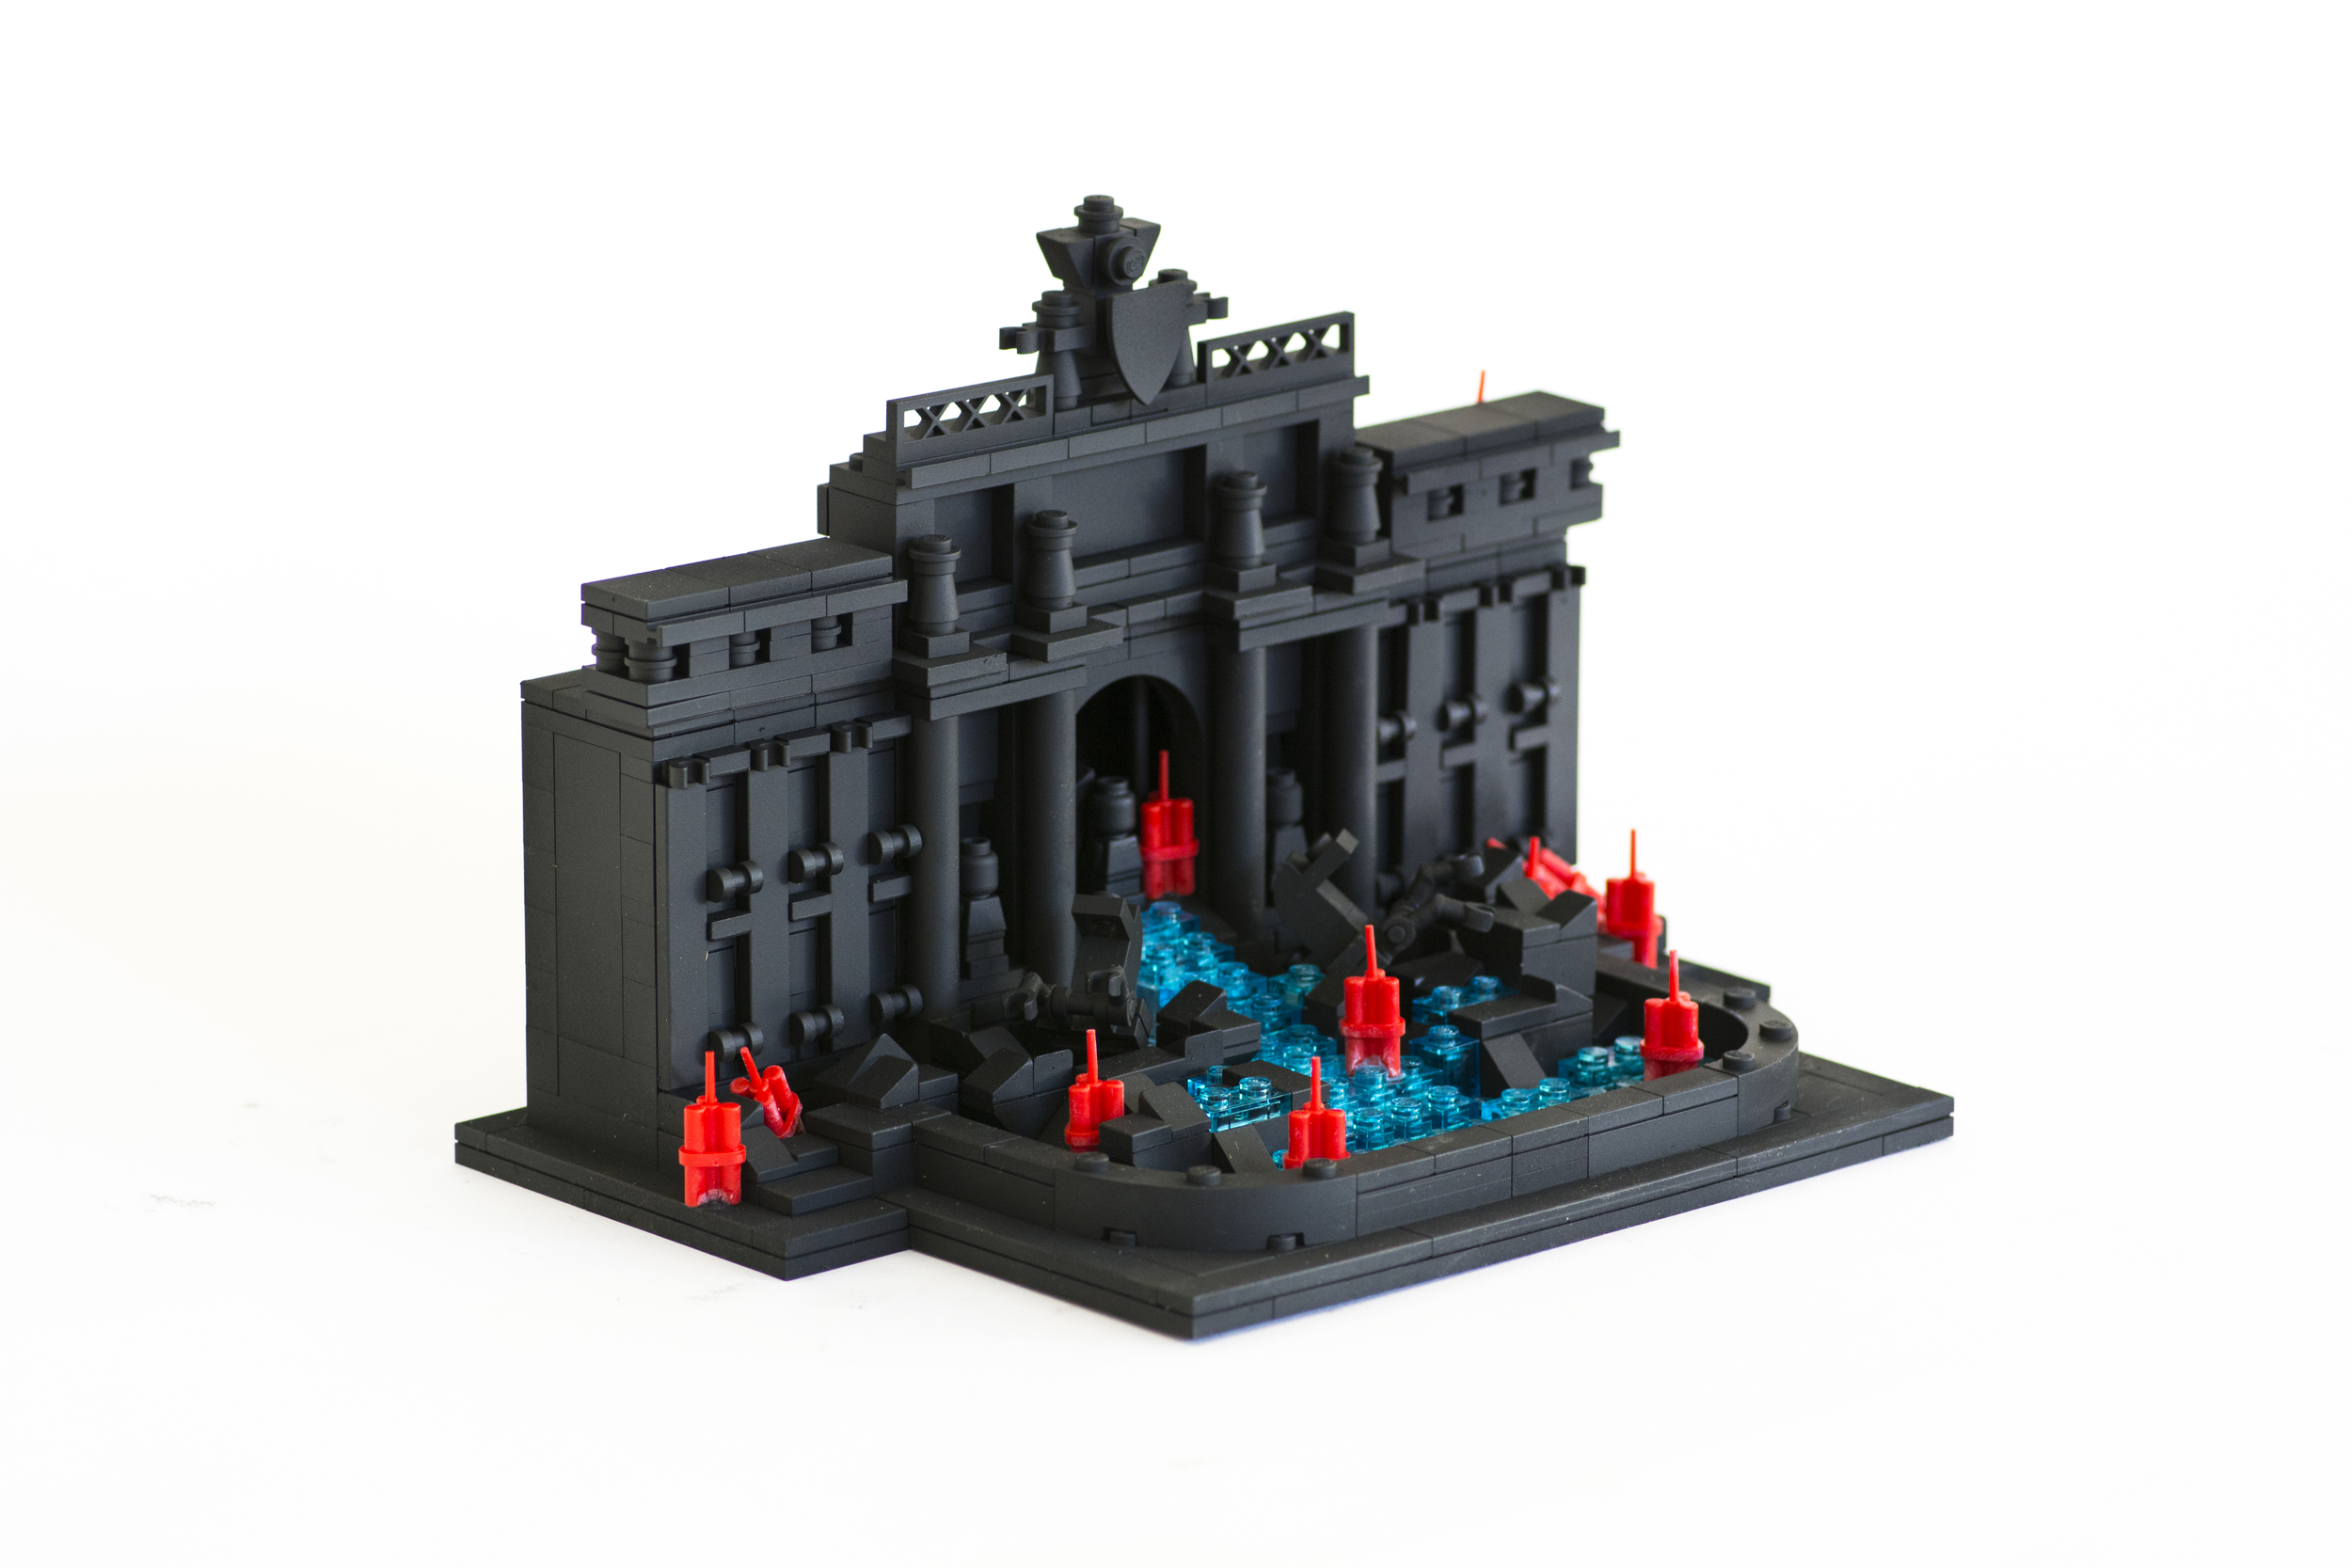 """Anti-Monuments for Counter Histories (12/12/1969) , painted lego pieces and plastic dynamite,5"""" (14cm) tall, 7"""" (20cm) wide and 5"""" (14cm) deep, 2015"""